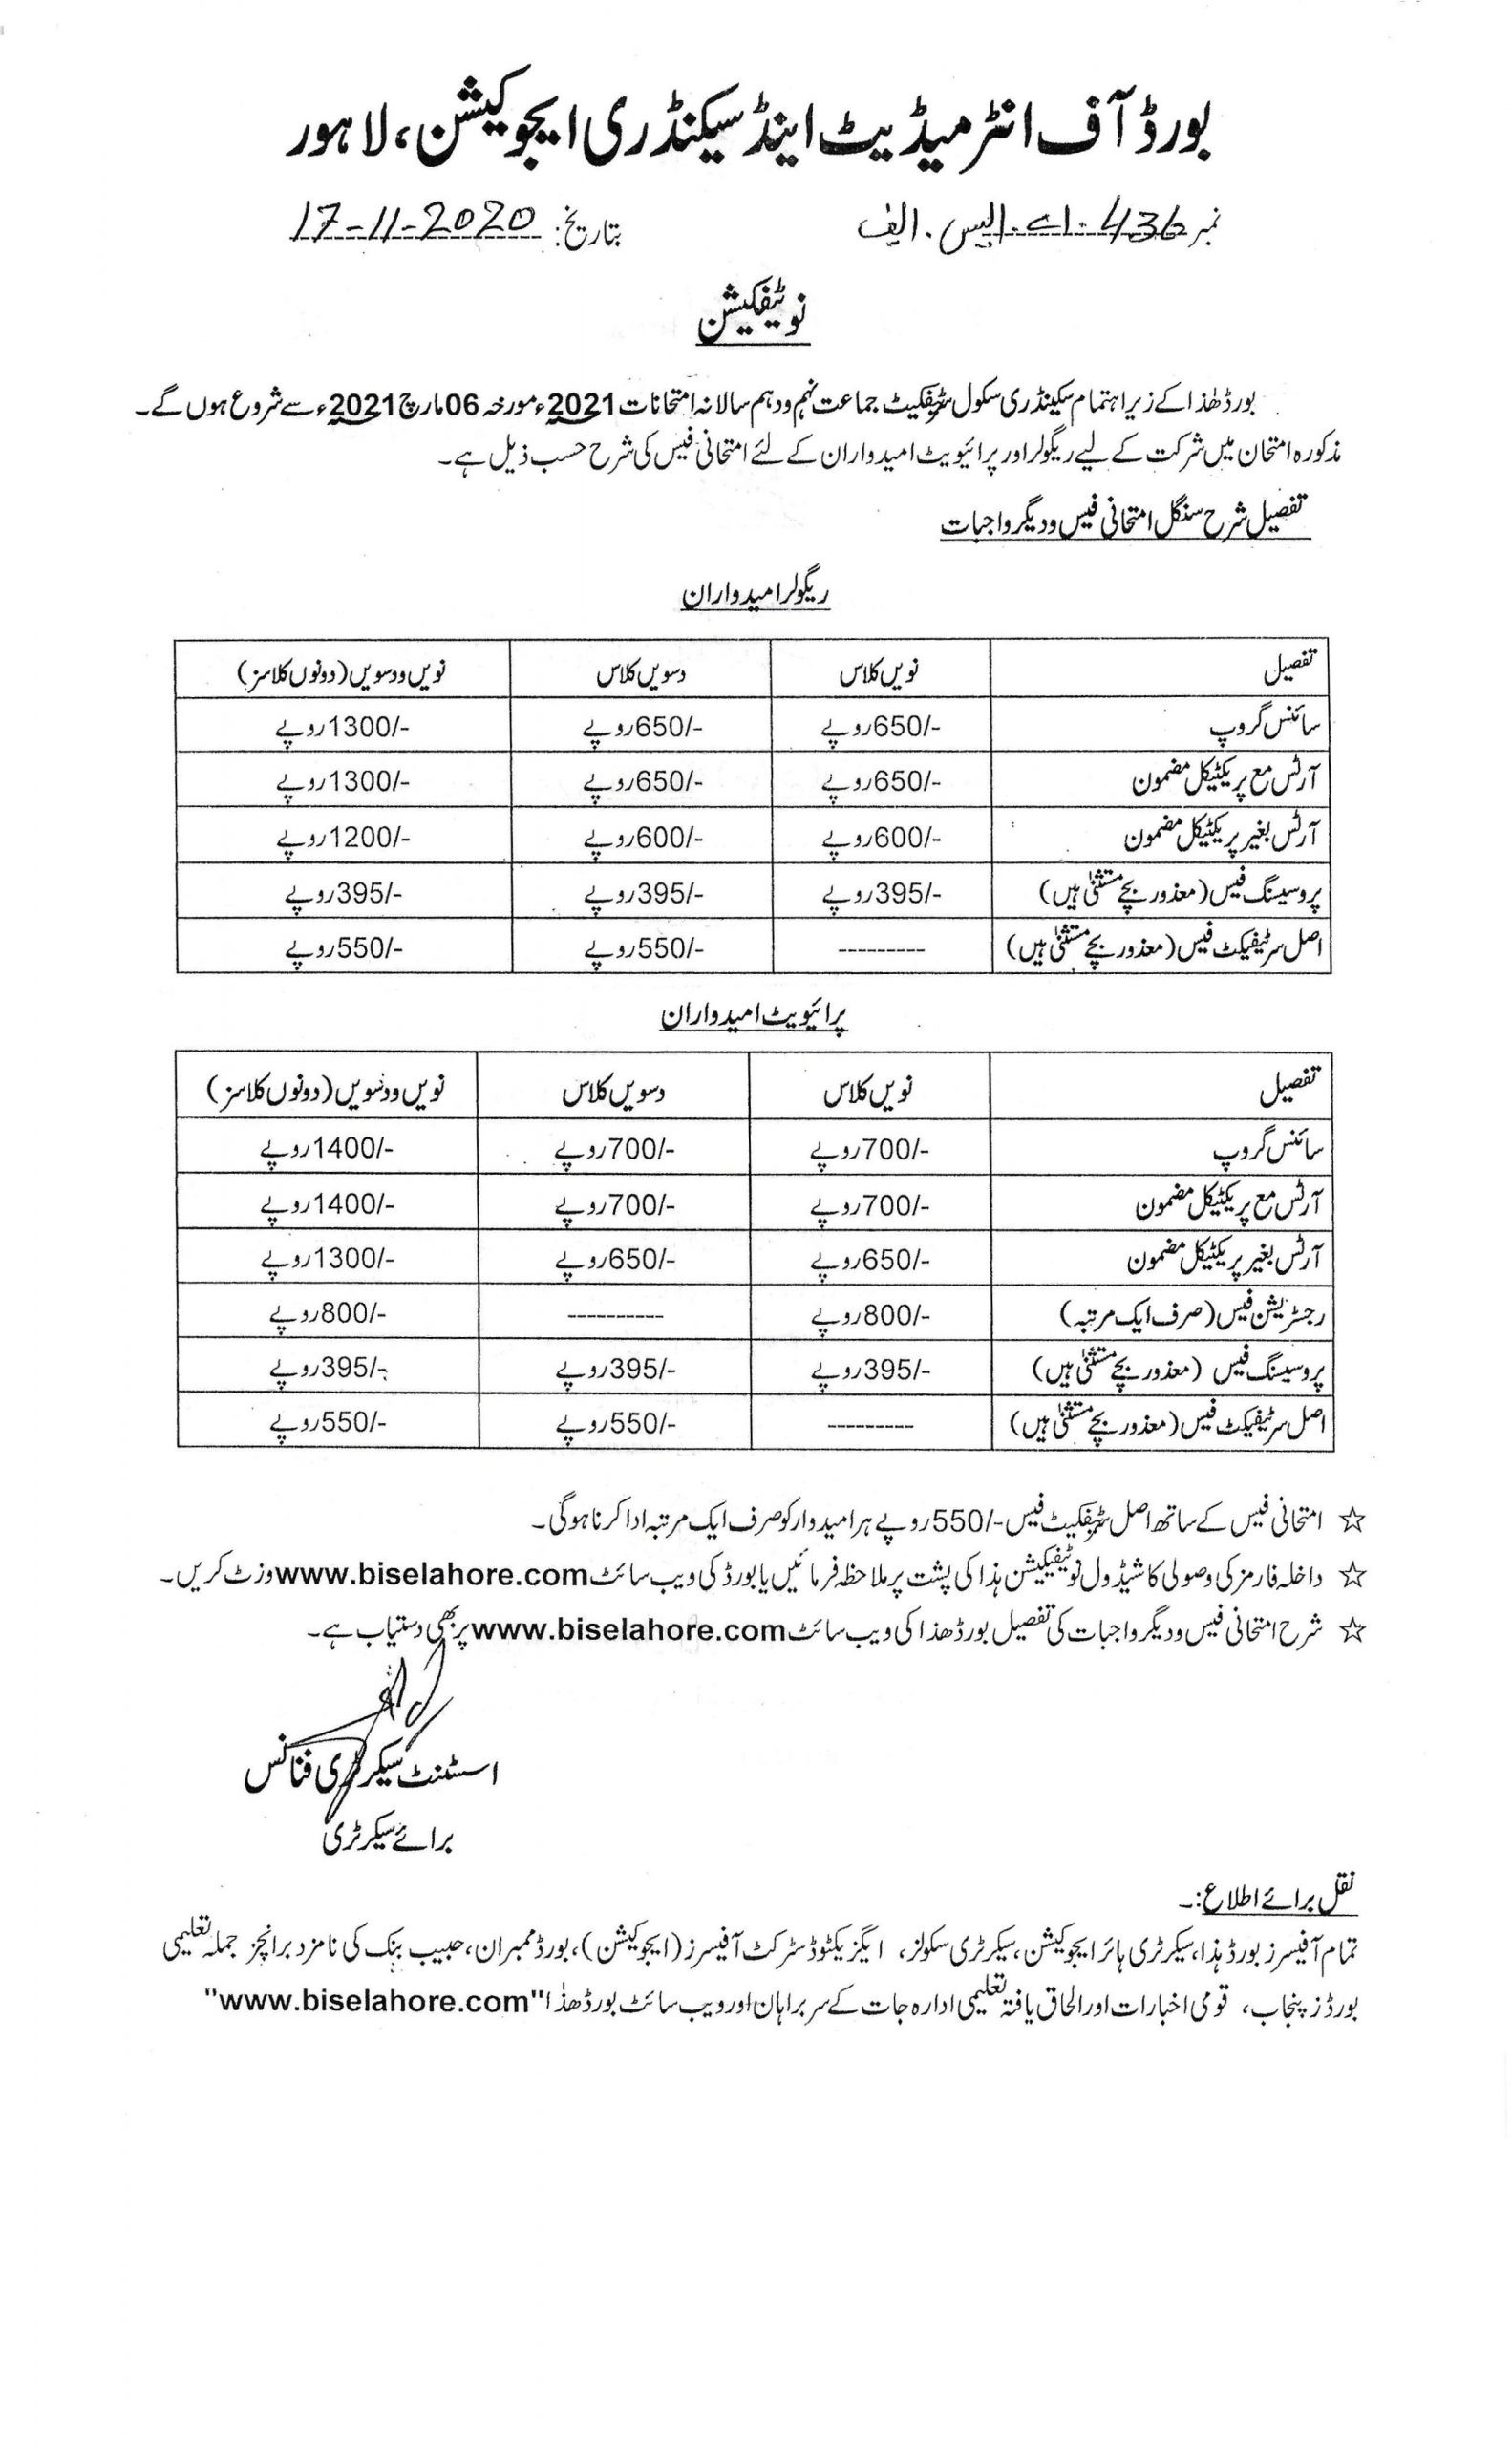 BISE Lahore Schedule of SSC Examinations 2021 and Admission Forms